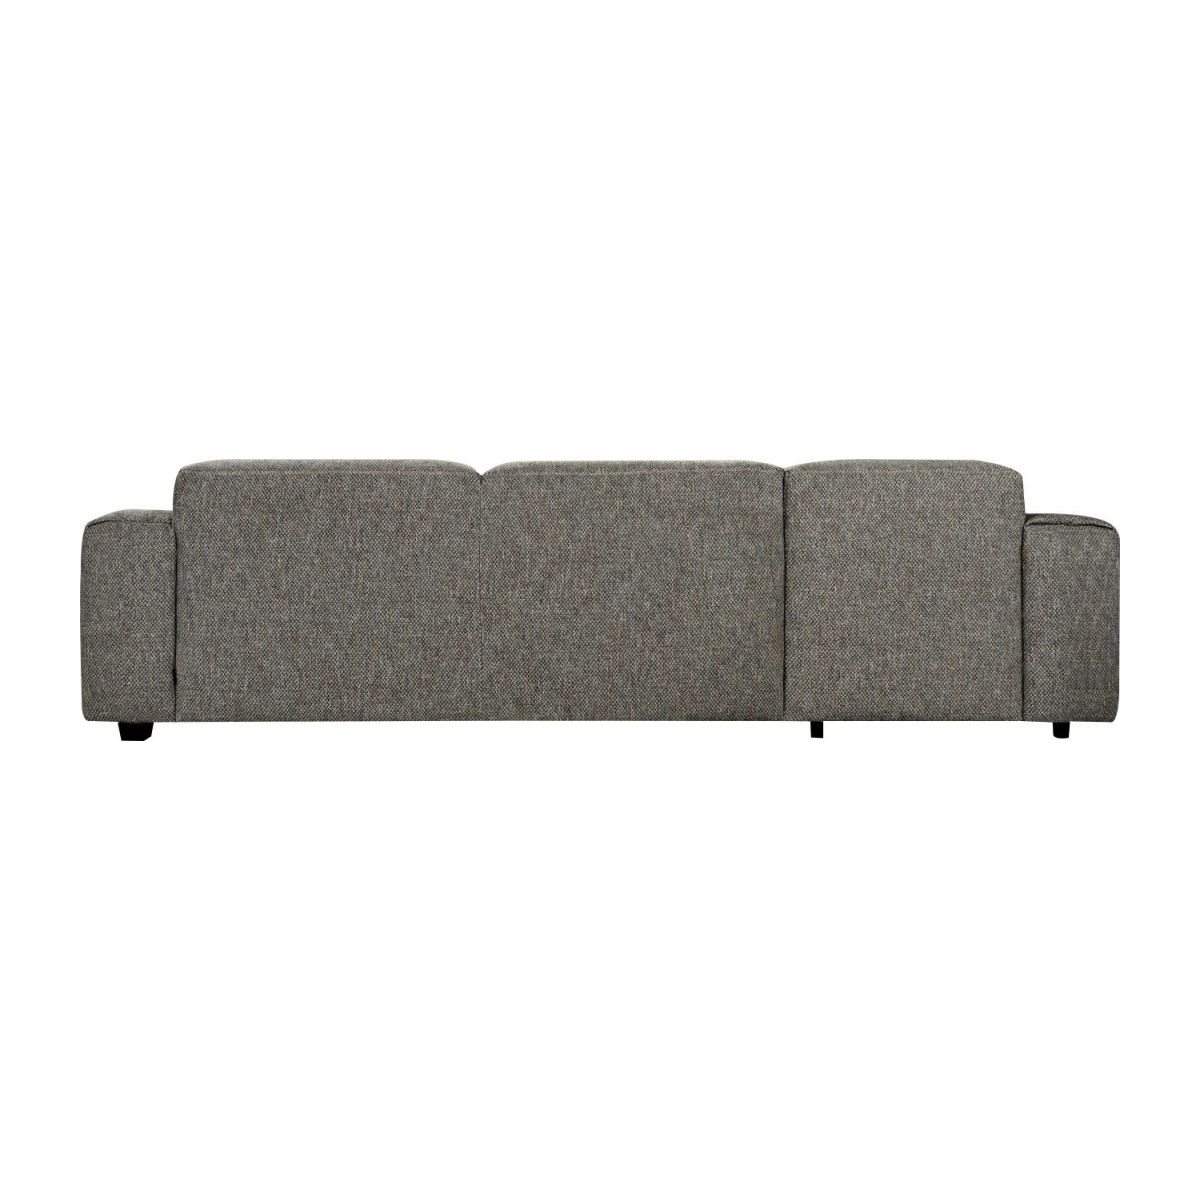 Sofá 3 plazas con chaiselongue izquierda de tela Bellagio night black n°5